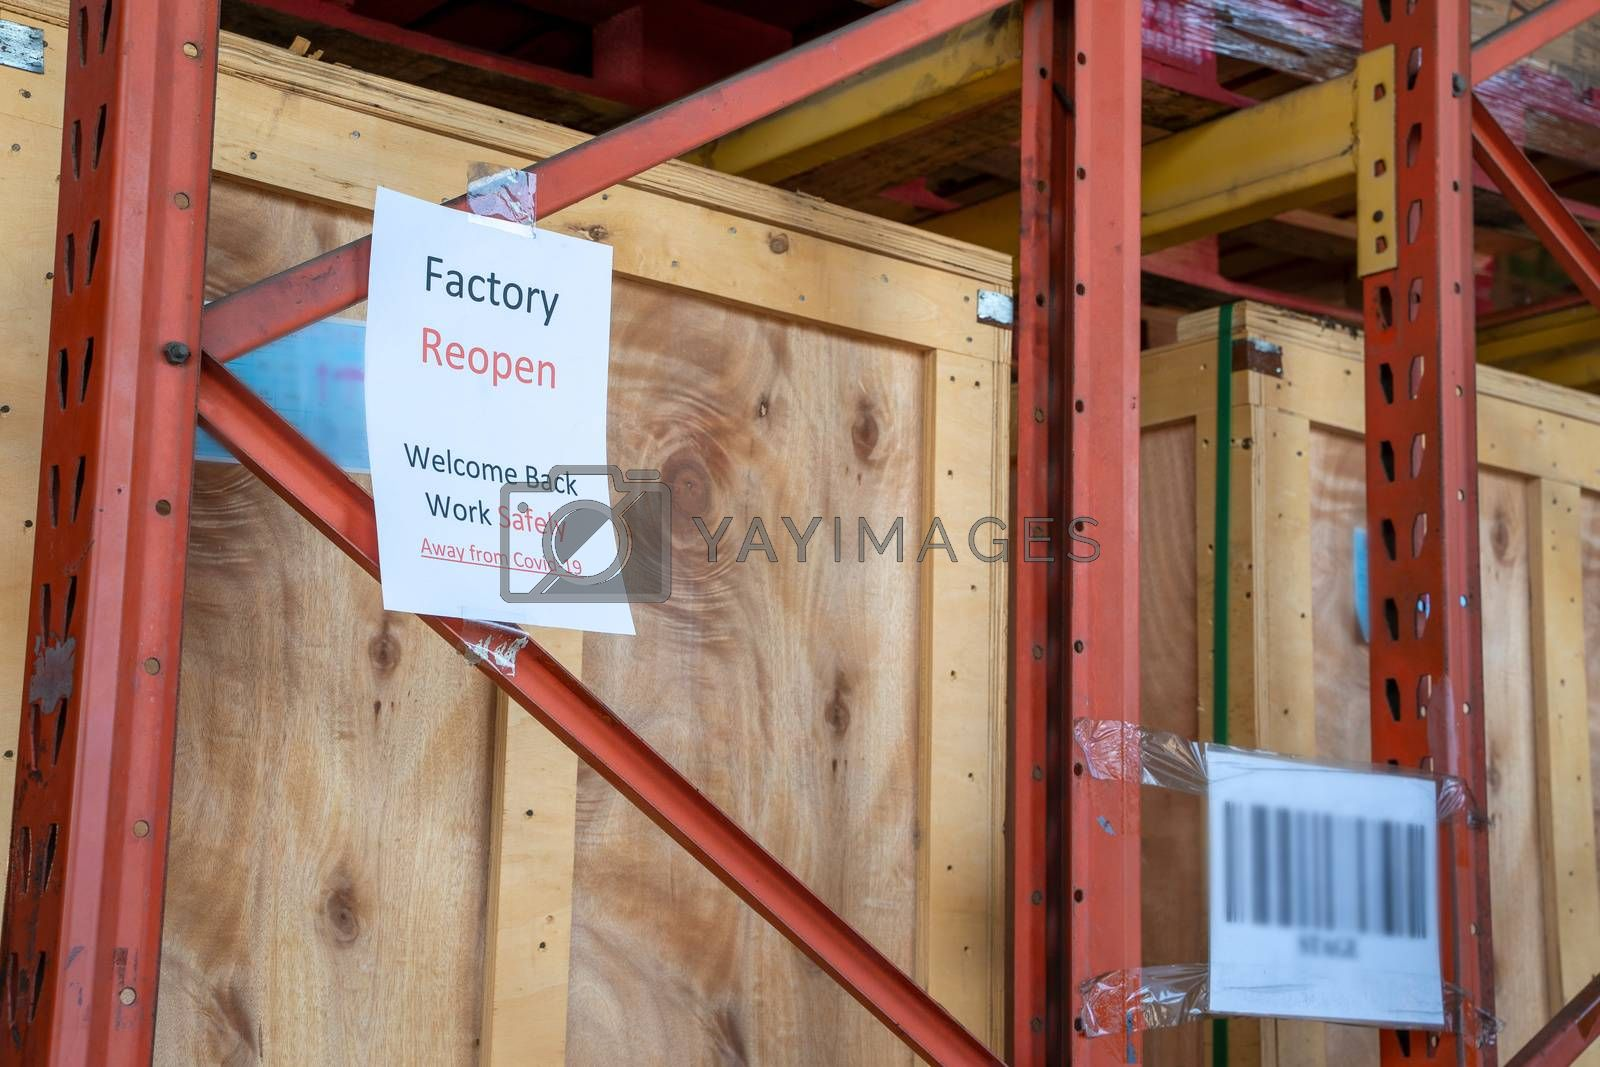 Paper written factory reopen,Welcome back due covid19 pandemic,warehouse reopen after Covid-19 pandemic.